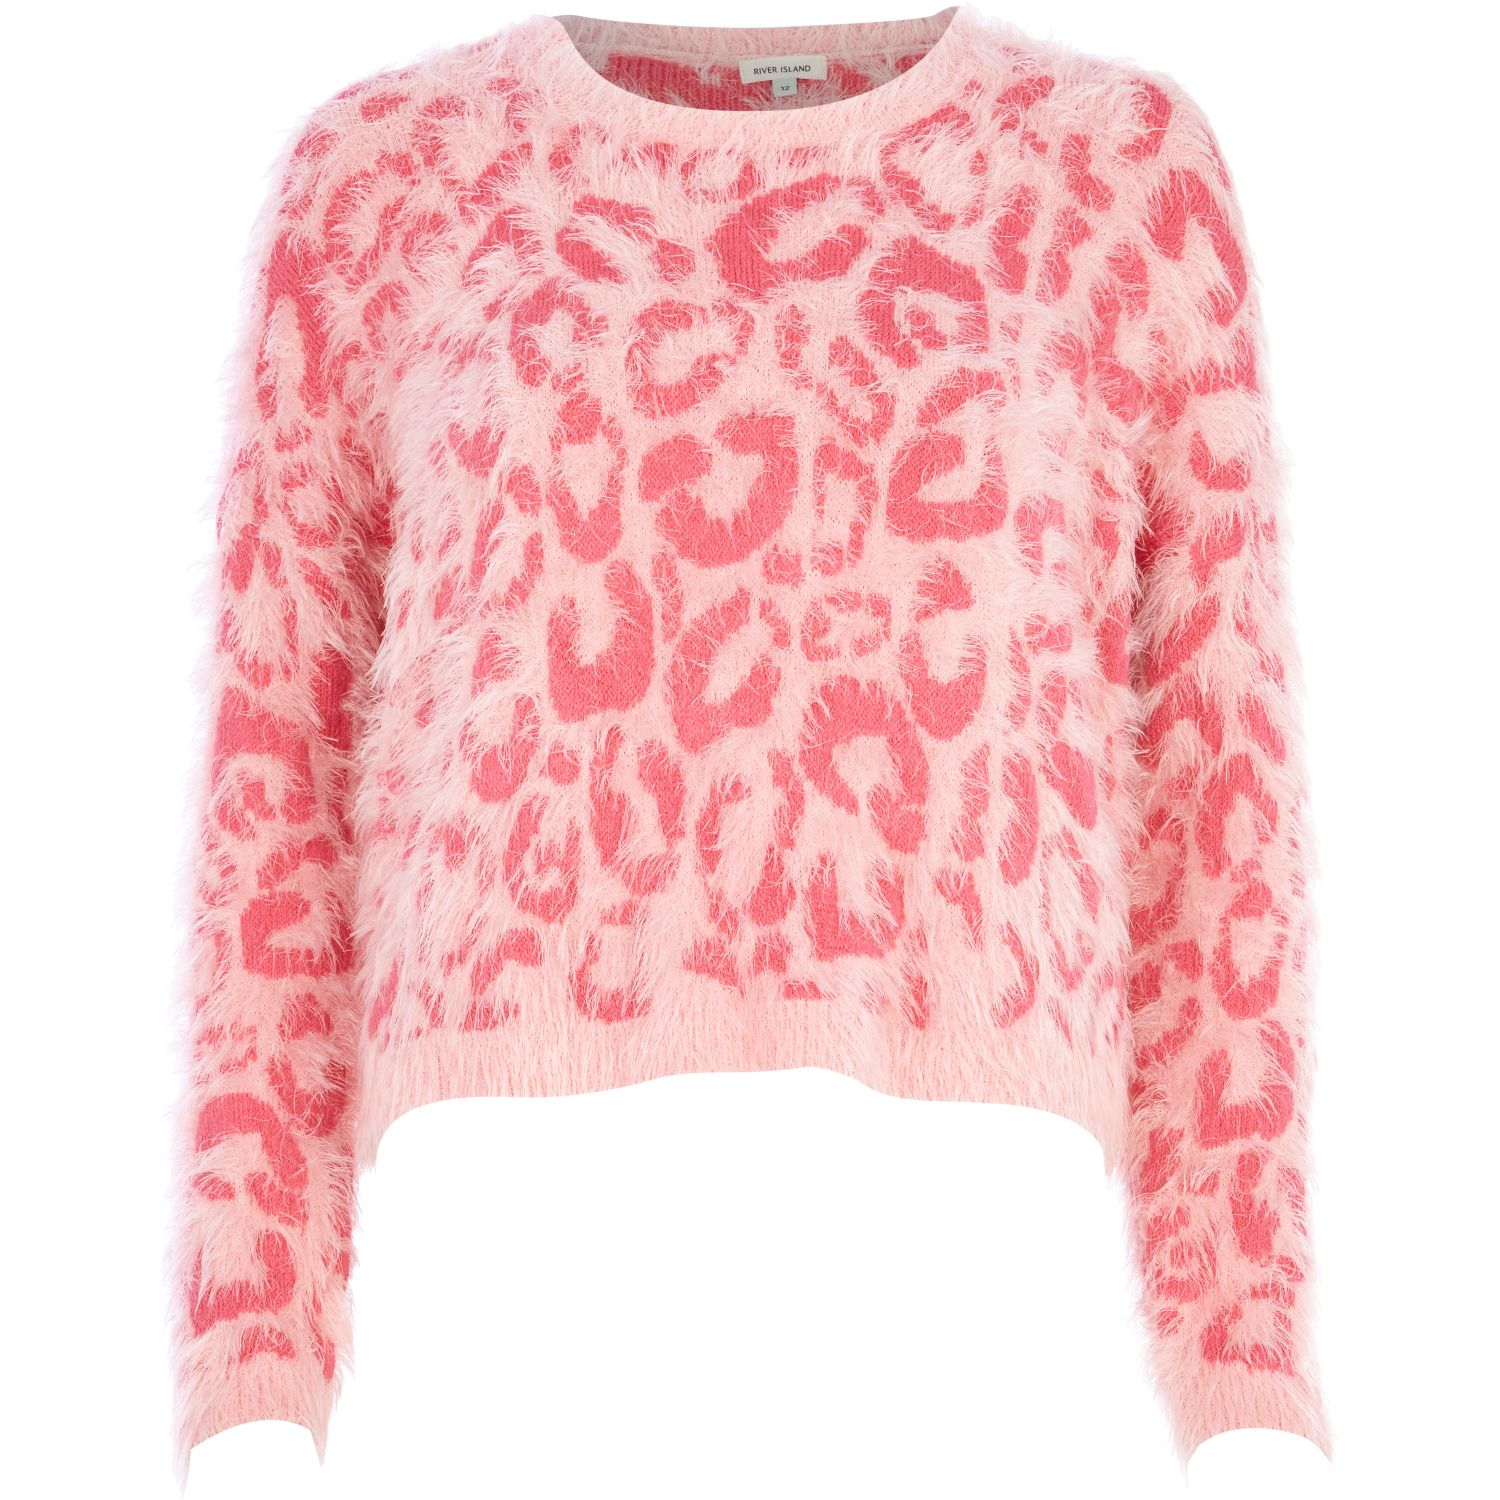 River island Pink Leopard Print Fluffy Cropped Sweater in Pink | Lyst